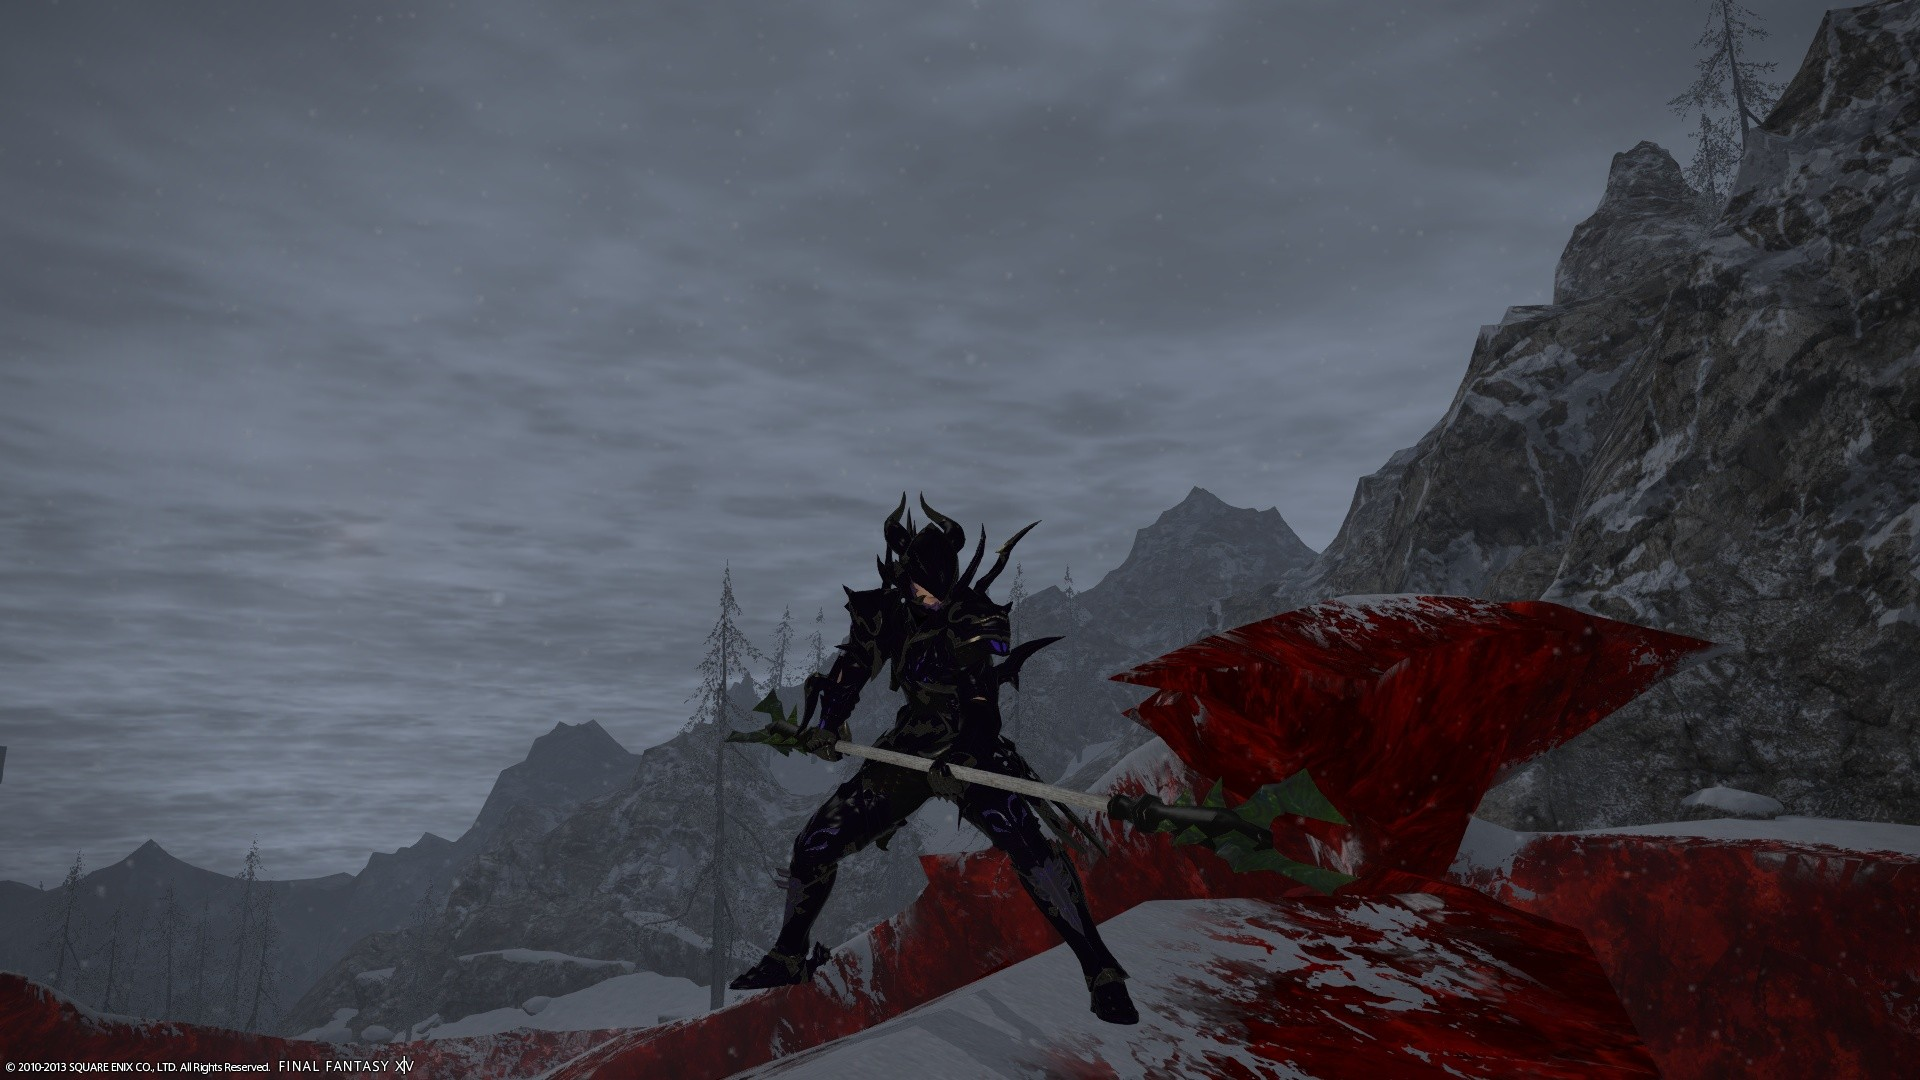 Final Fantasy XIV: A Realm Reborn - The dragoon